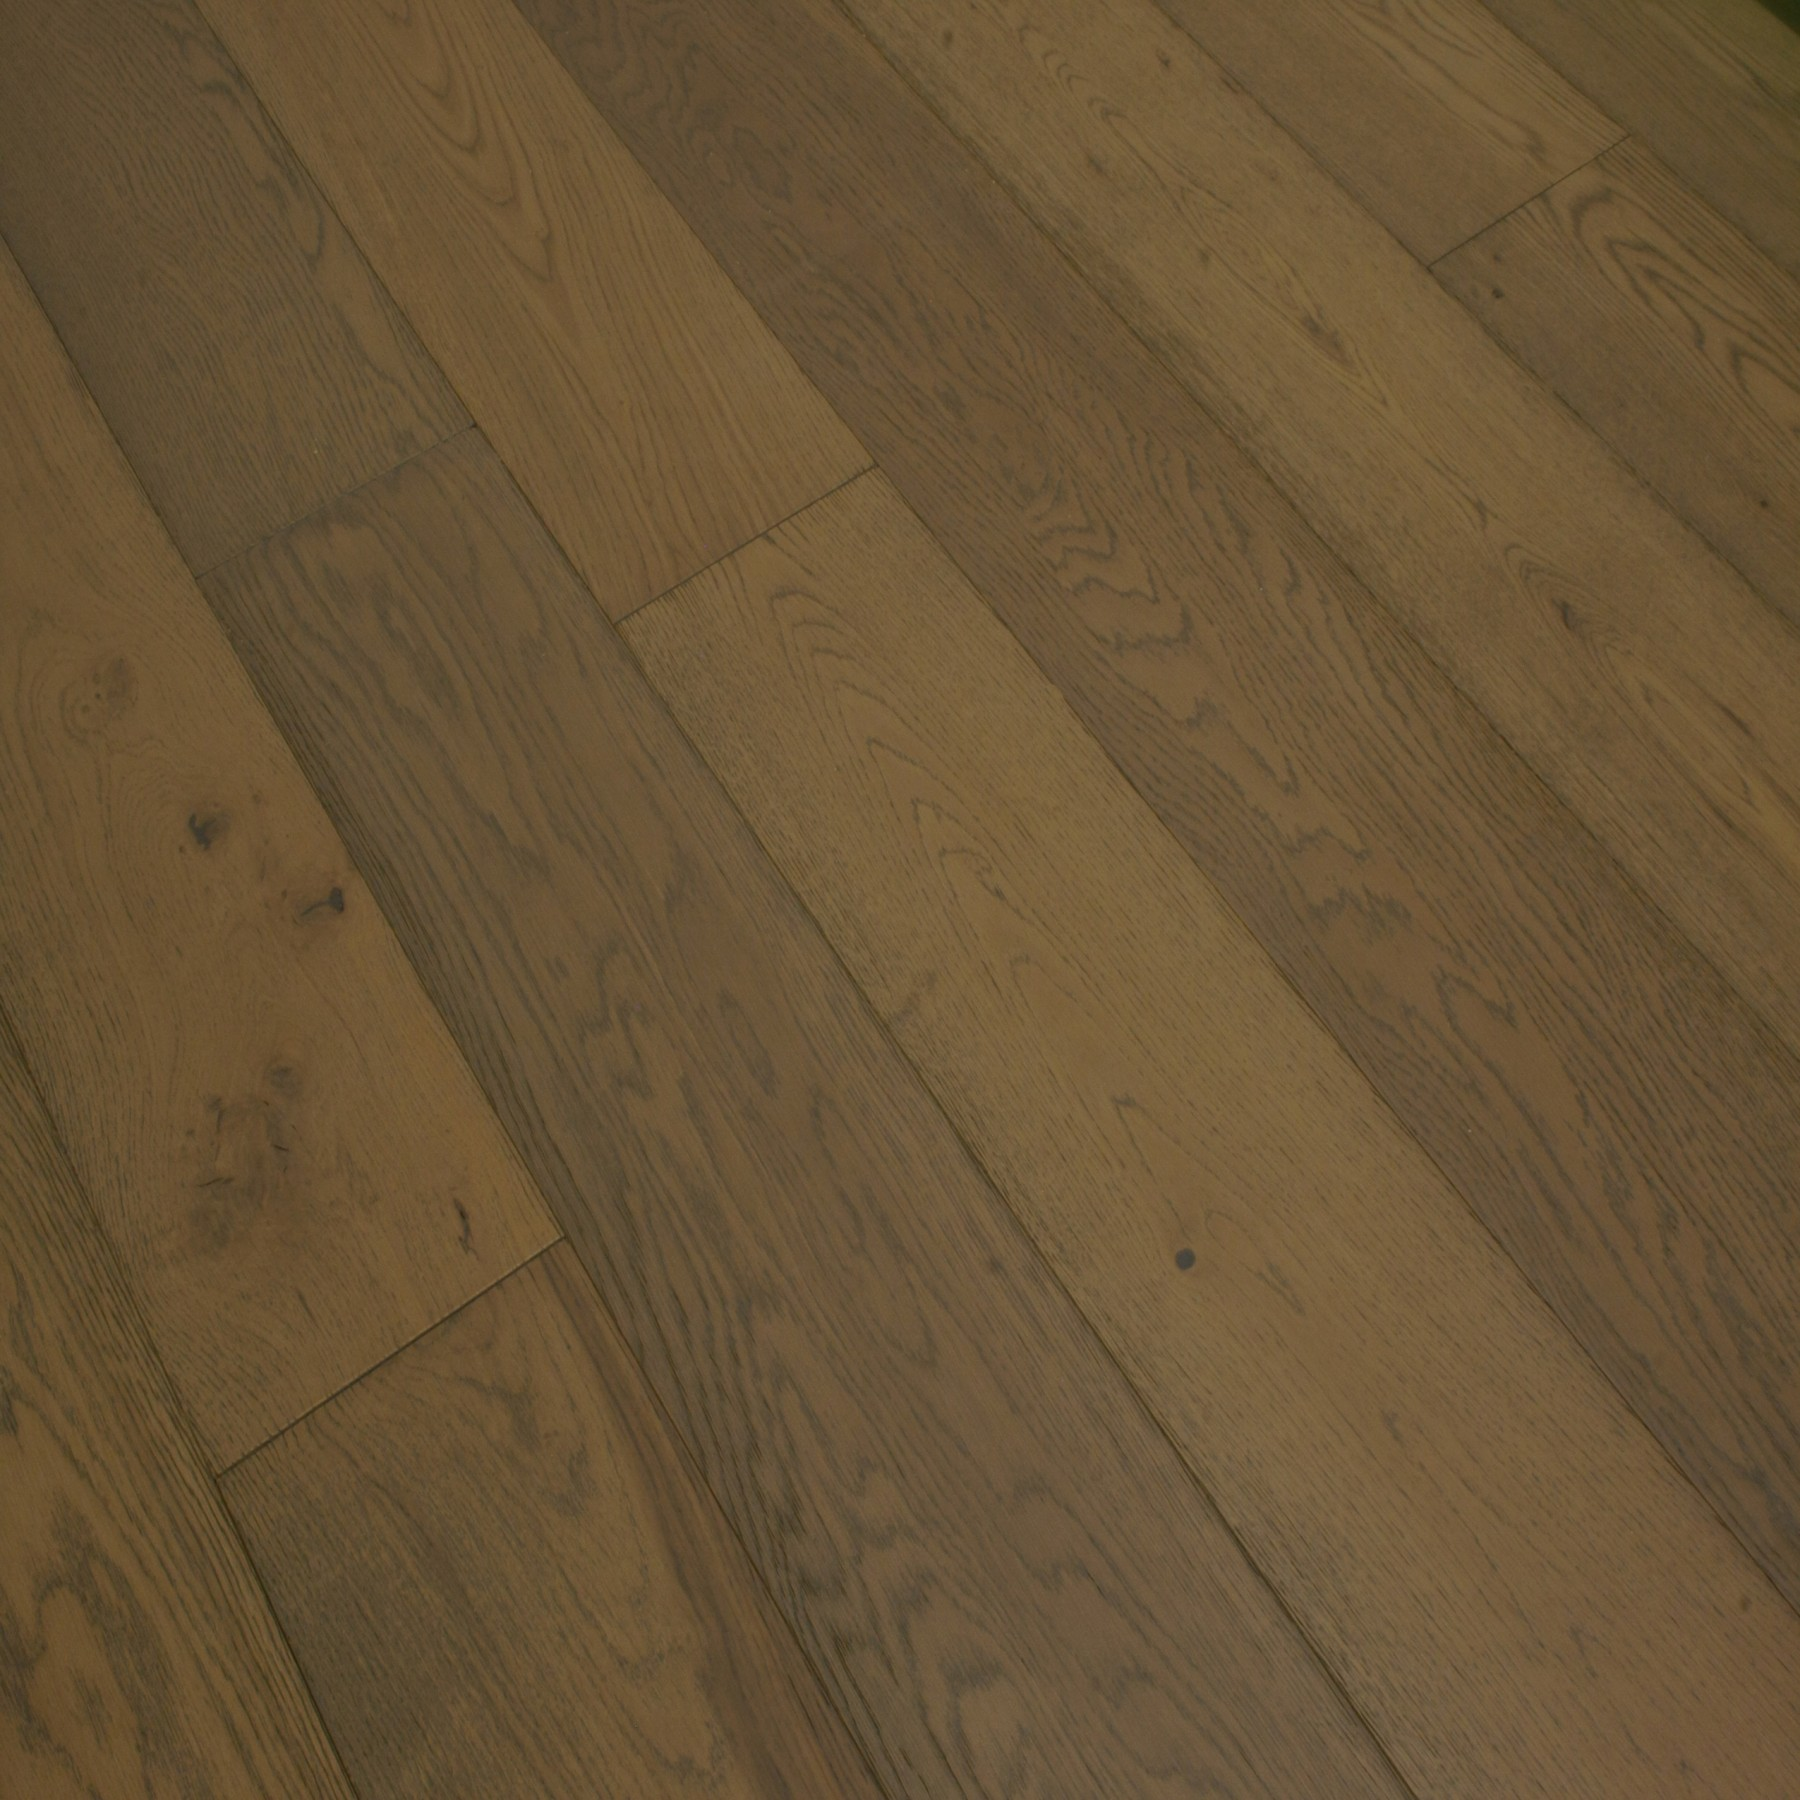 GILVA FEOPIA Oak Flooring Smoked Brushed & Matt Lacquered